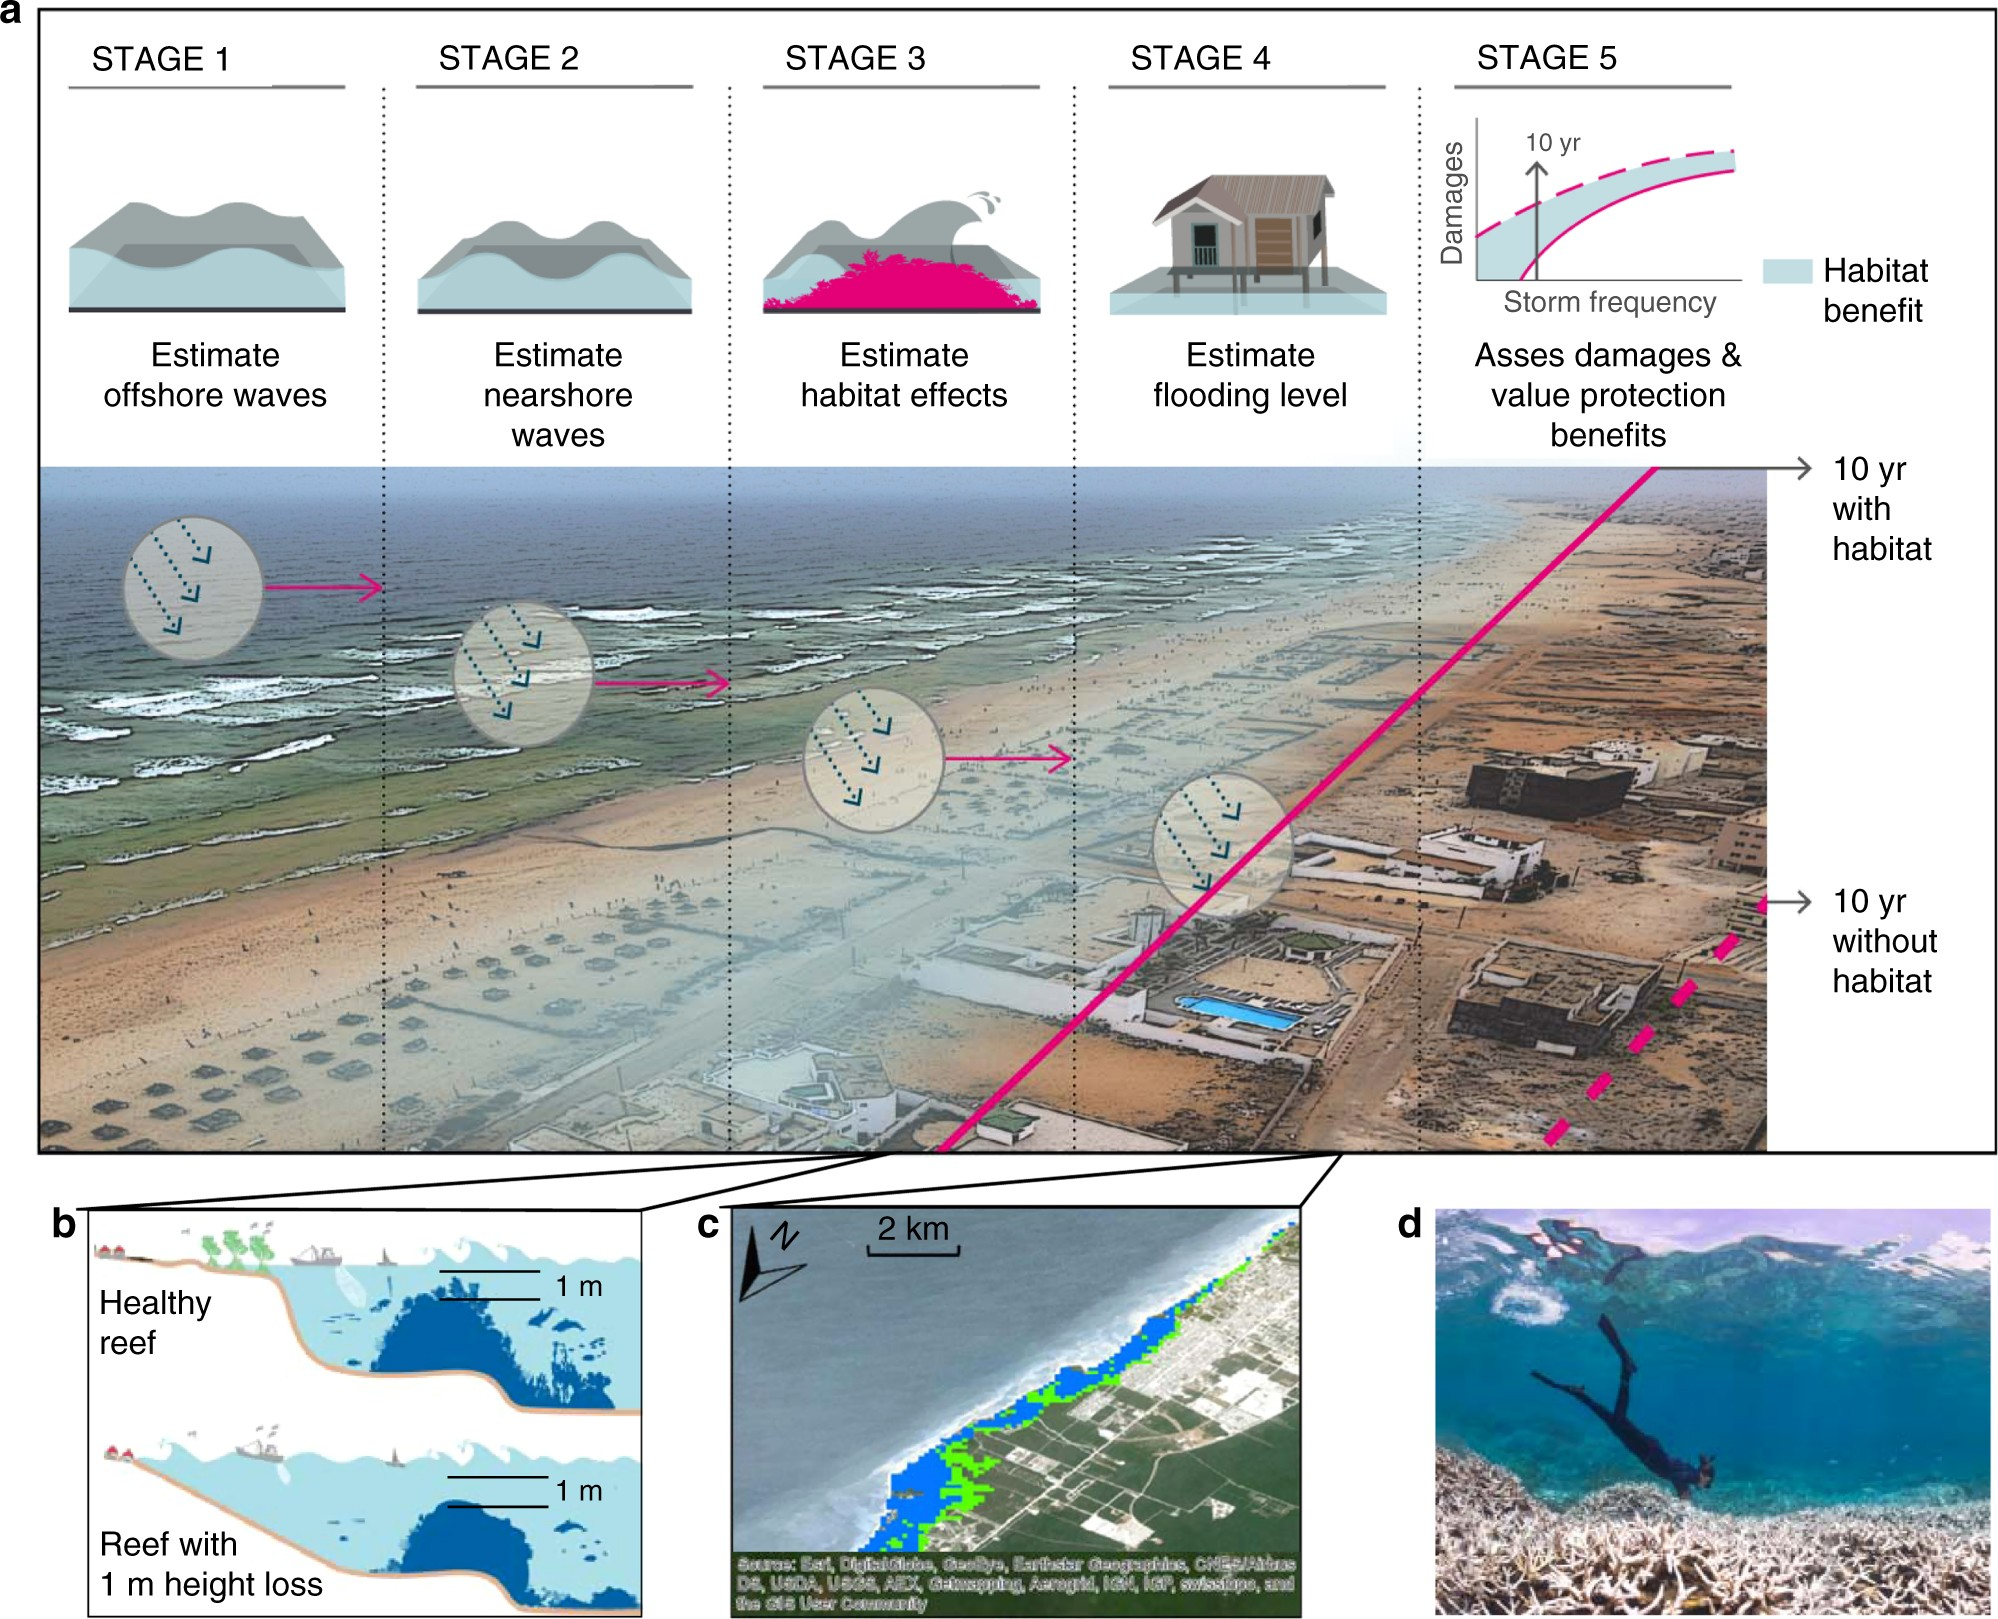 The global flood protection savings provided by coral reefs